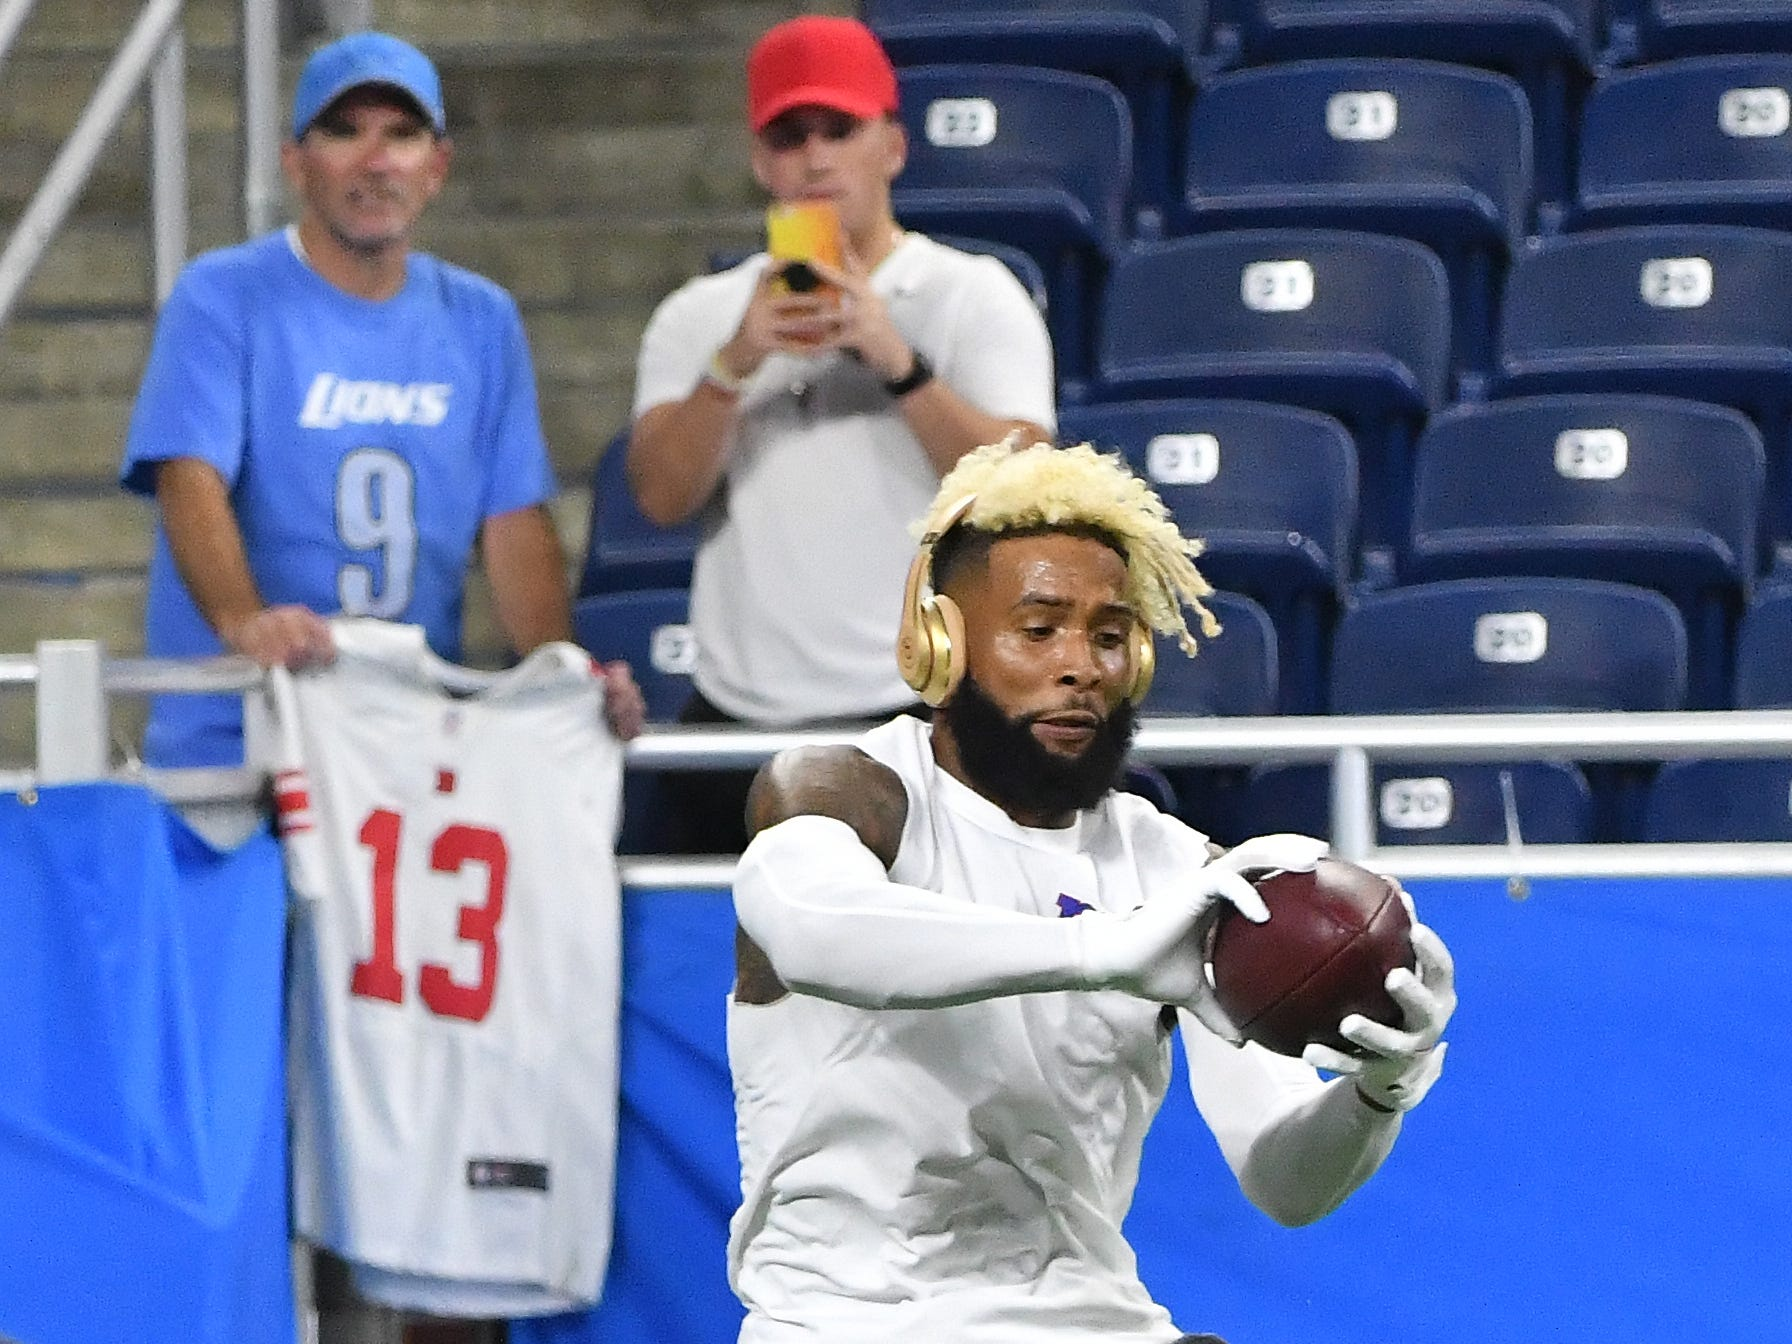 Giants wide receiver Odell Beckham Jr. working during warmups.